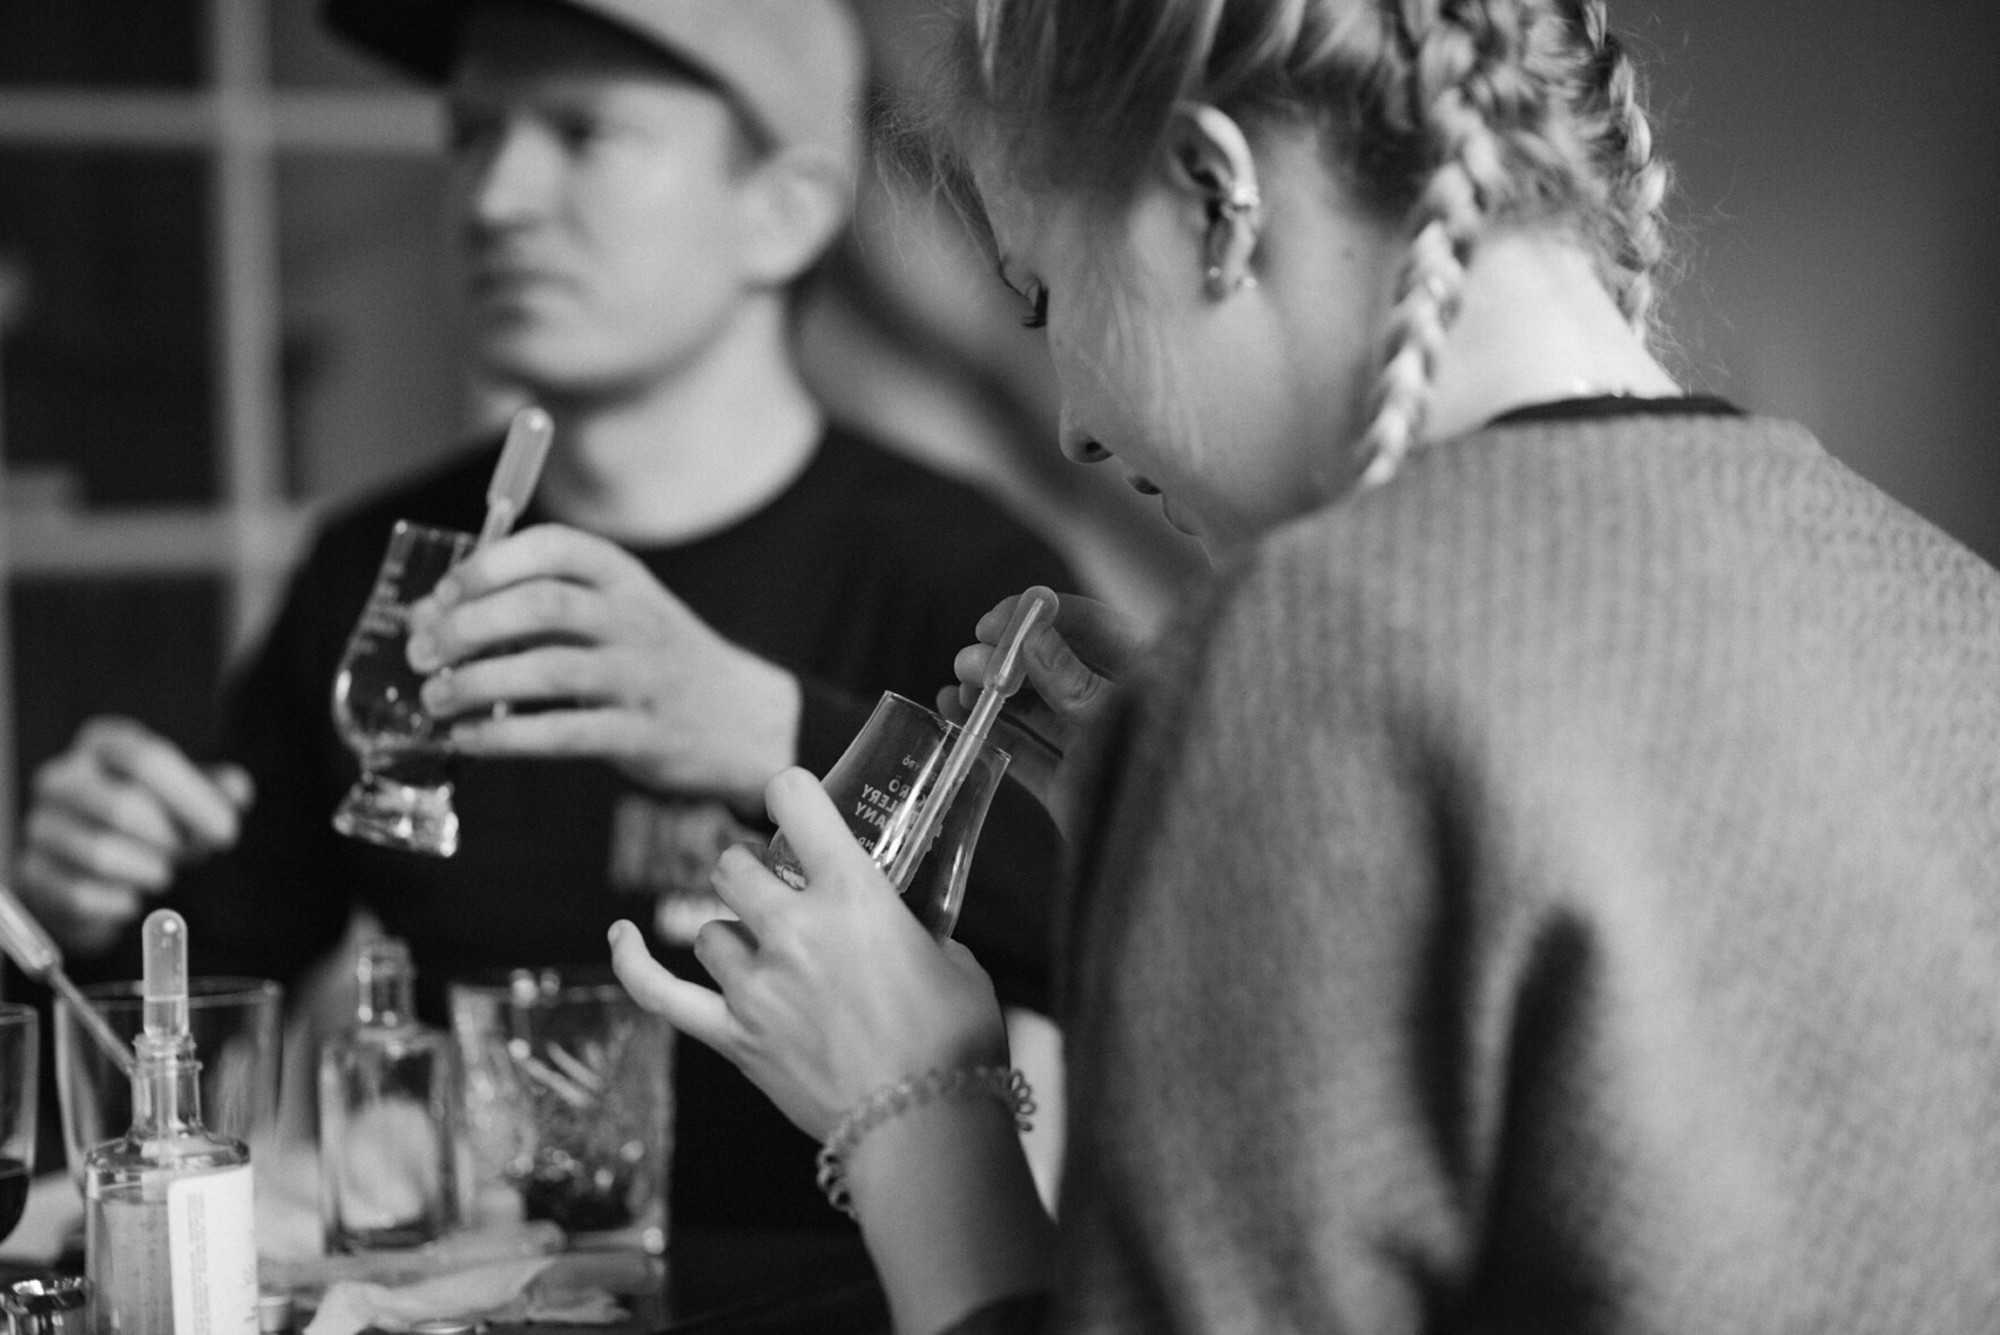 Black and white image of a man and woman attending a gin blending workshop, sniffing tasting glasses.